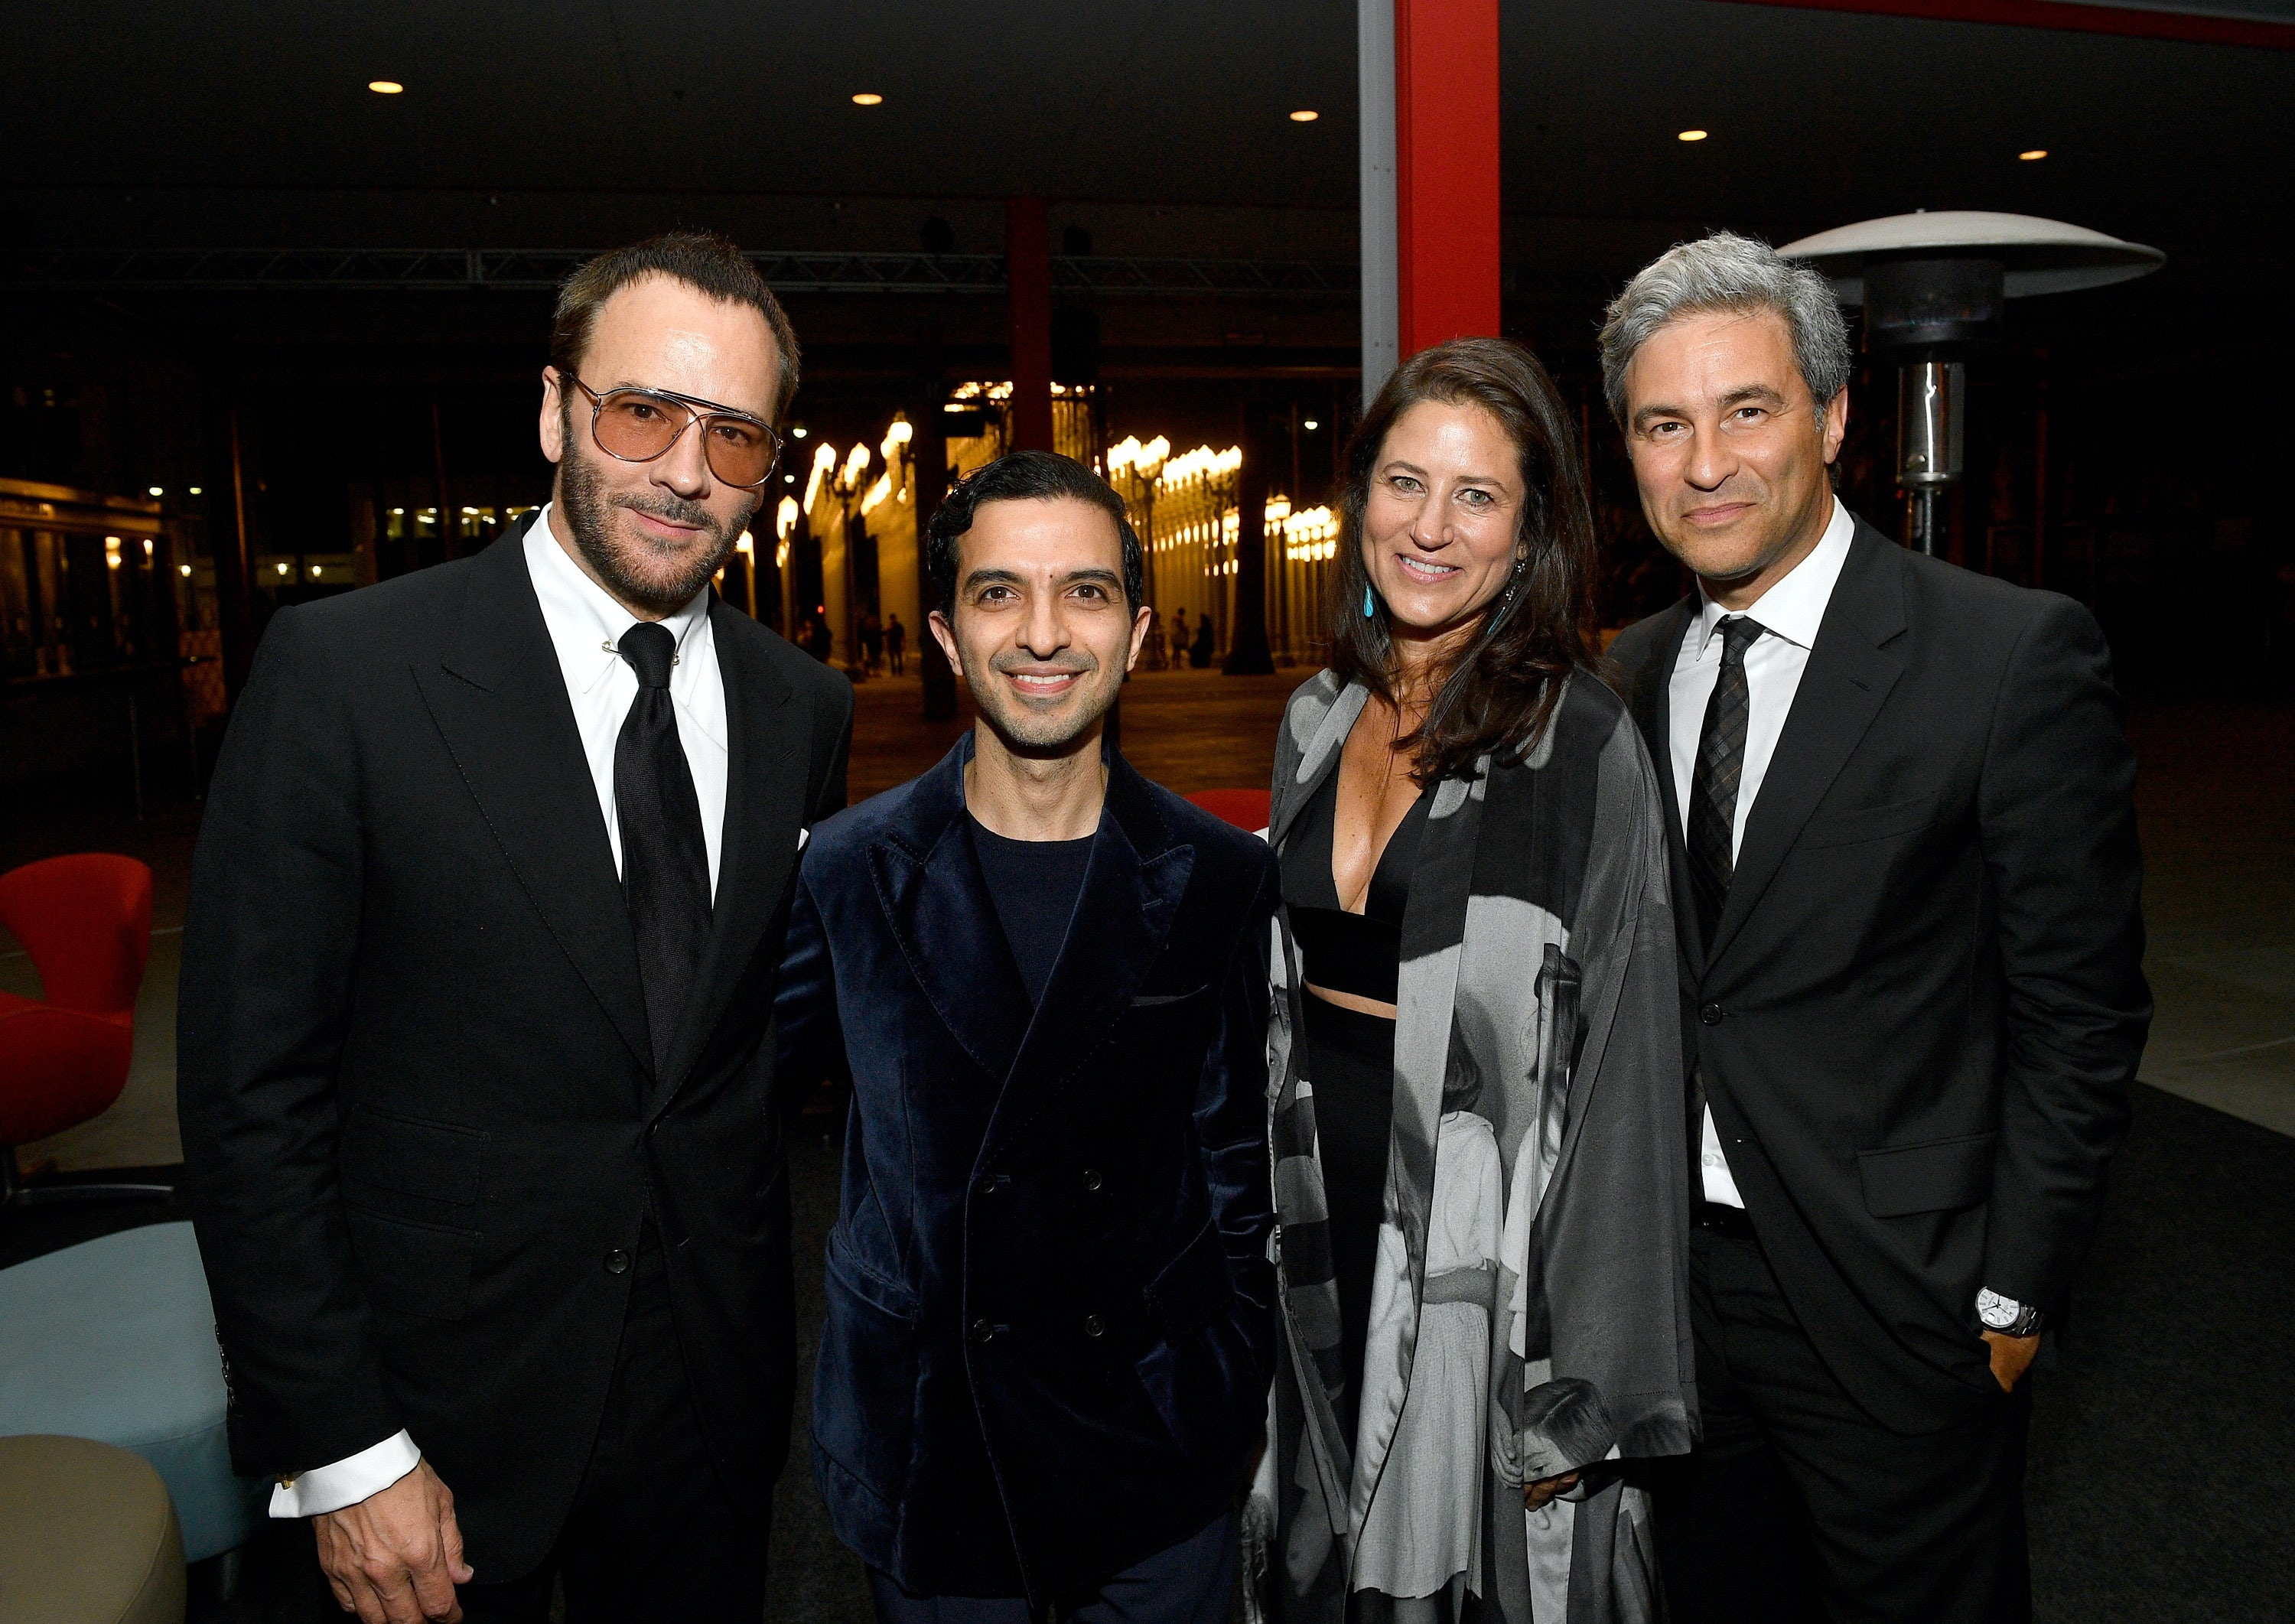 Tom Ford, Imran Amed, Katherine Ross and Michael Govan | Source: Matt Winkelmeyer/Getty Images